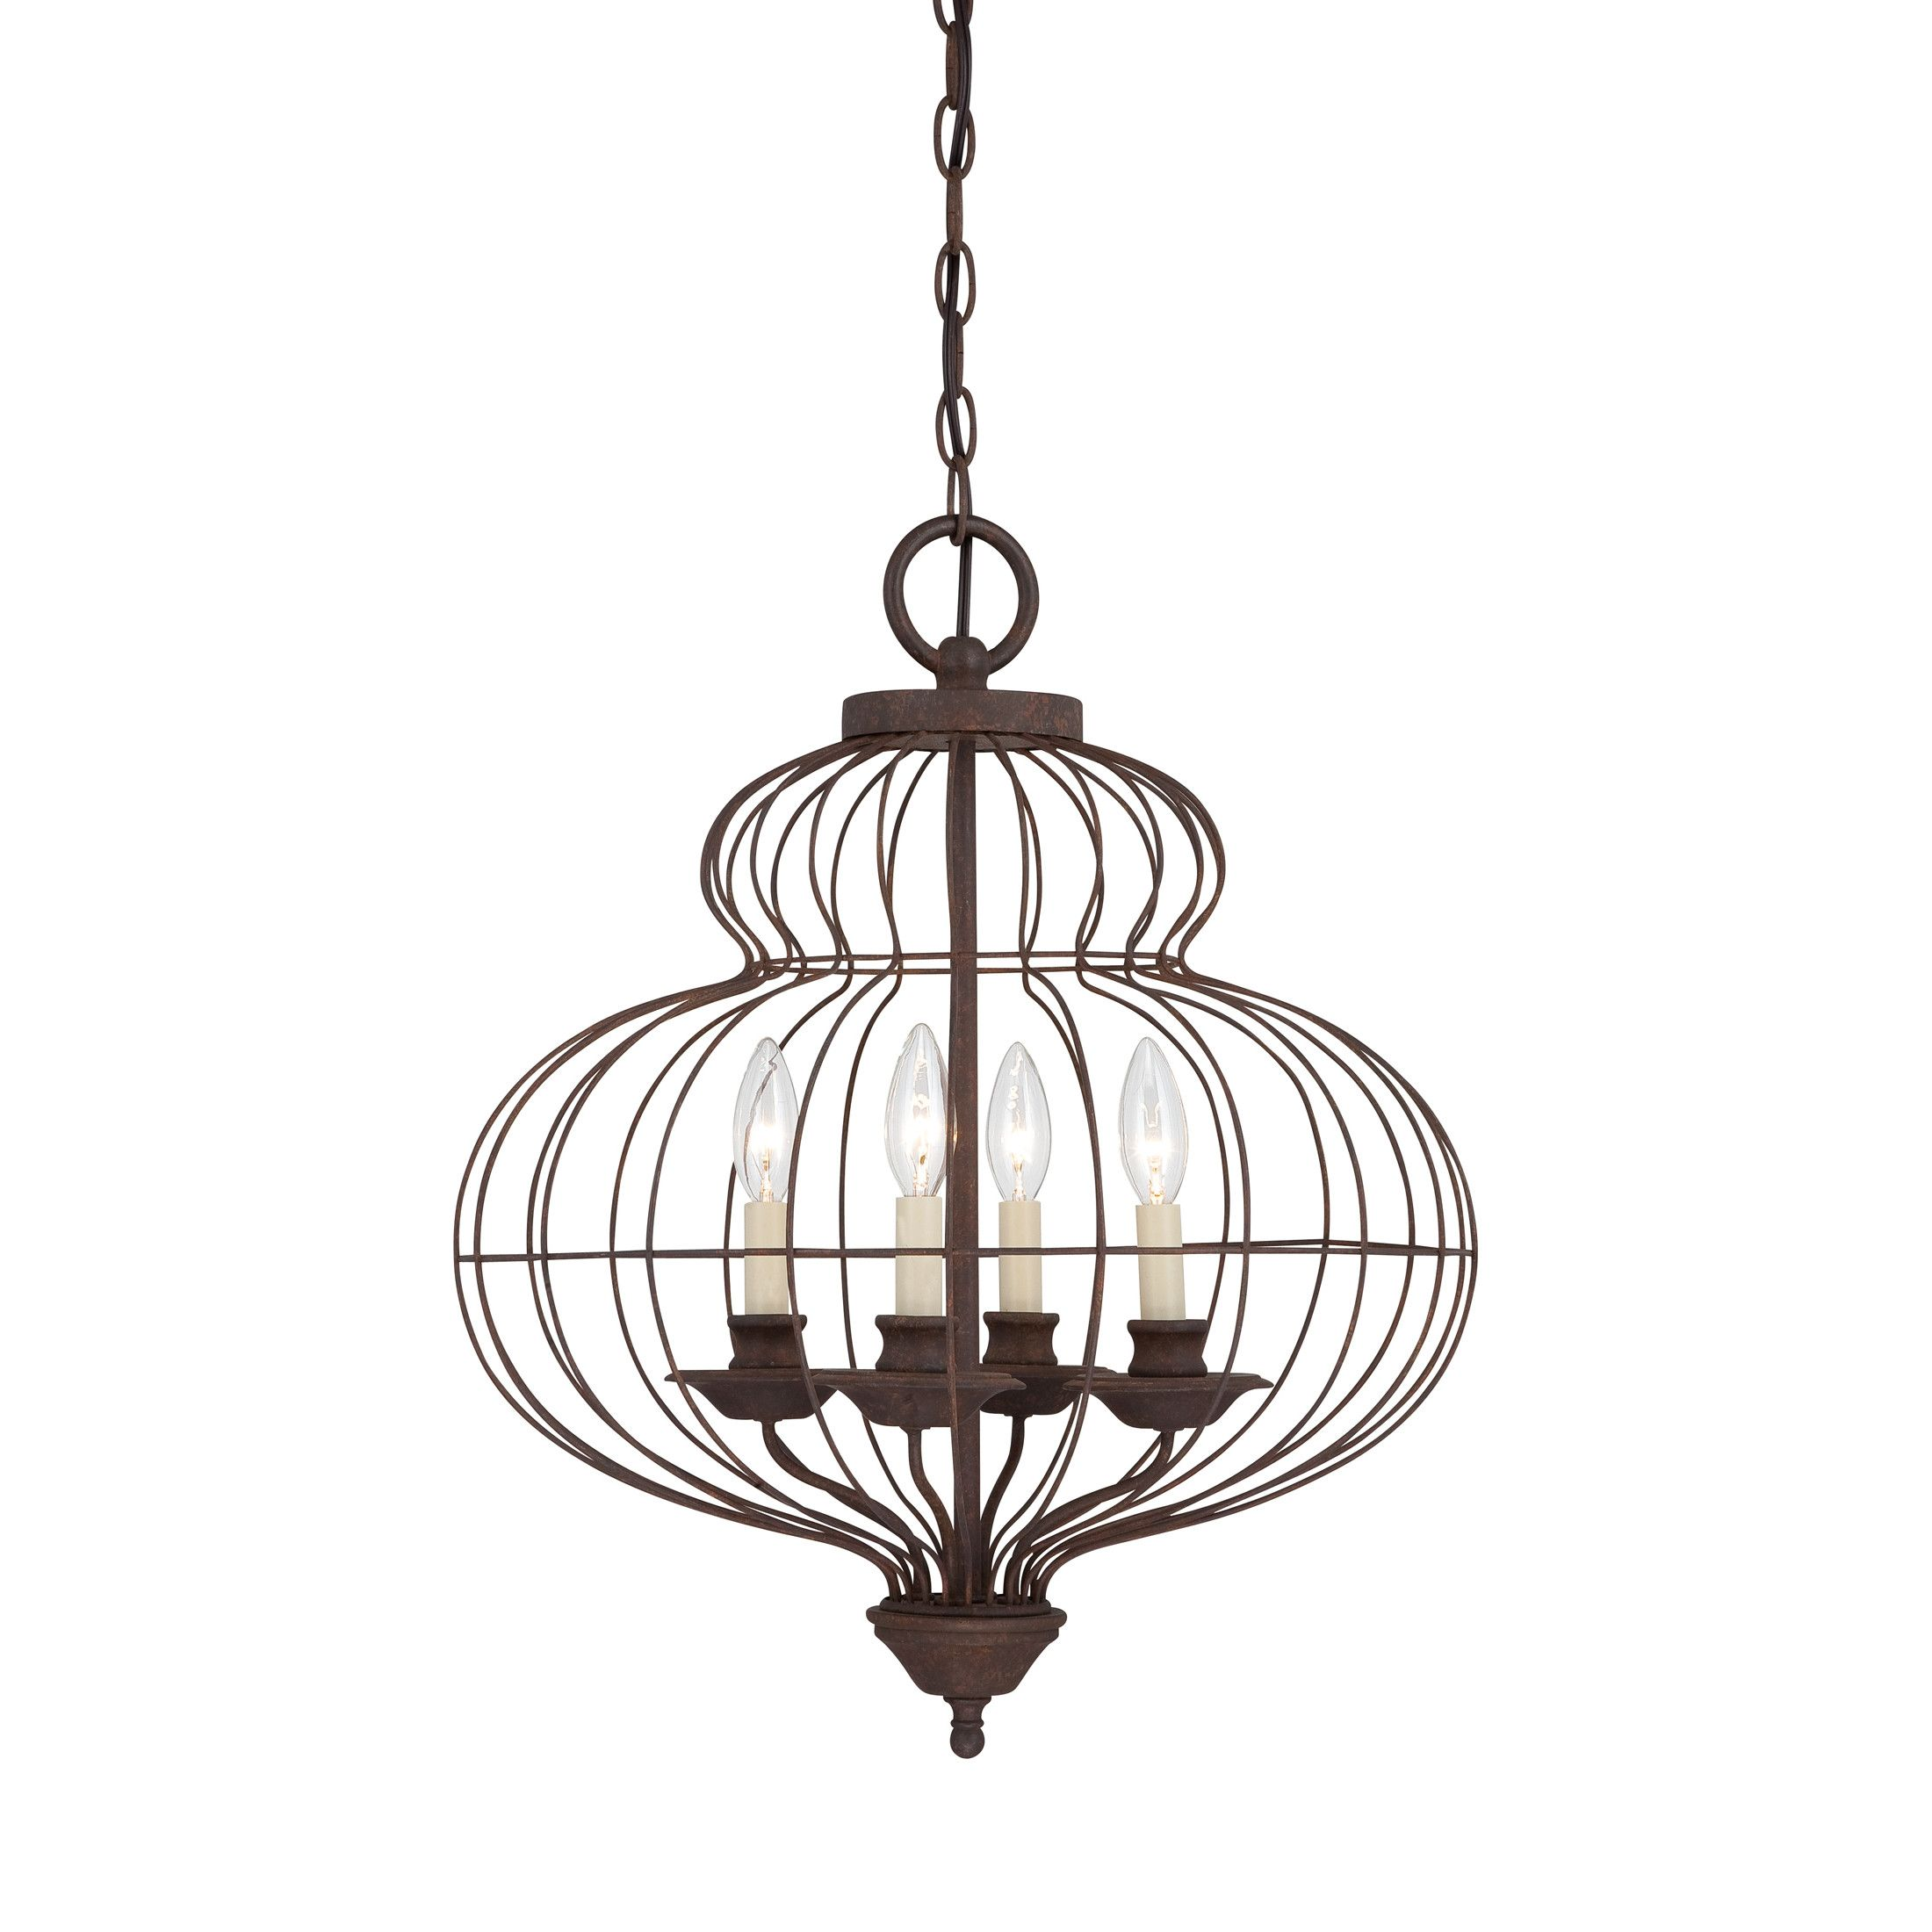 Quoizel Laila 4 Light Candle Style Chandelier Entry